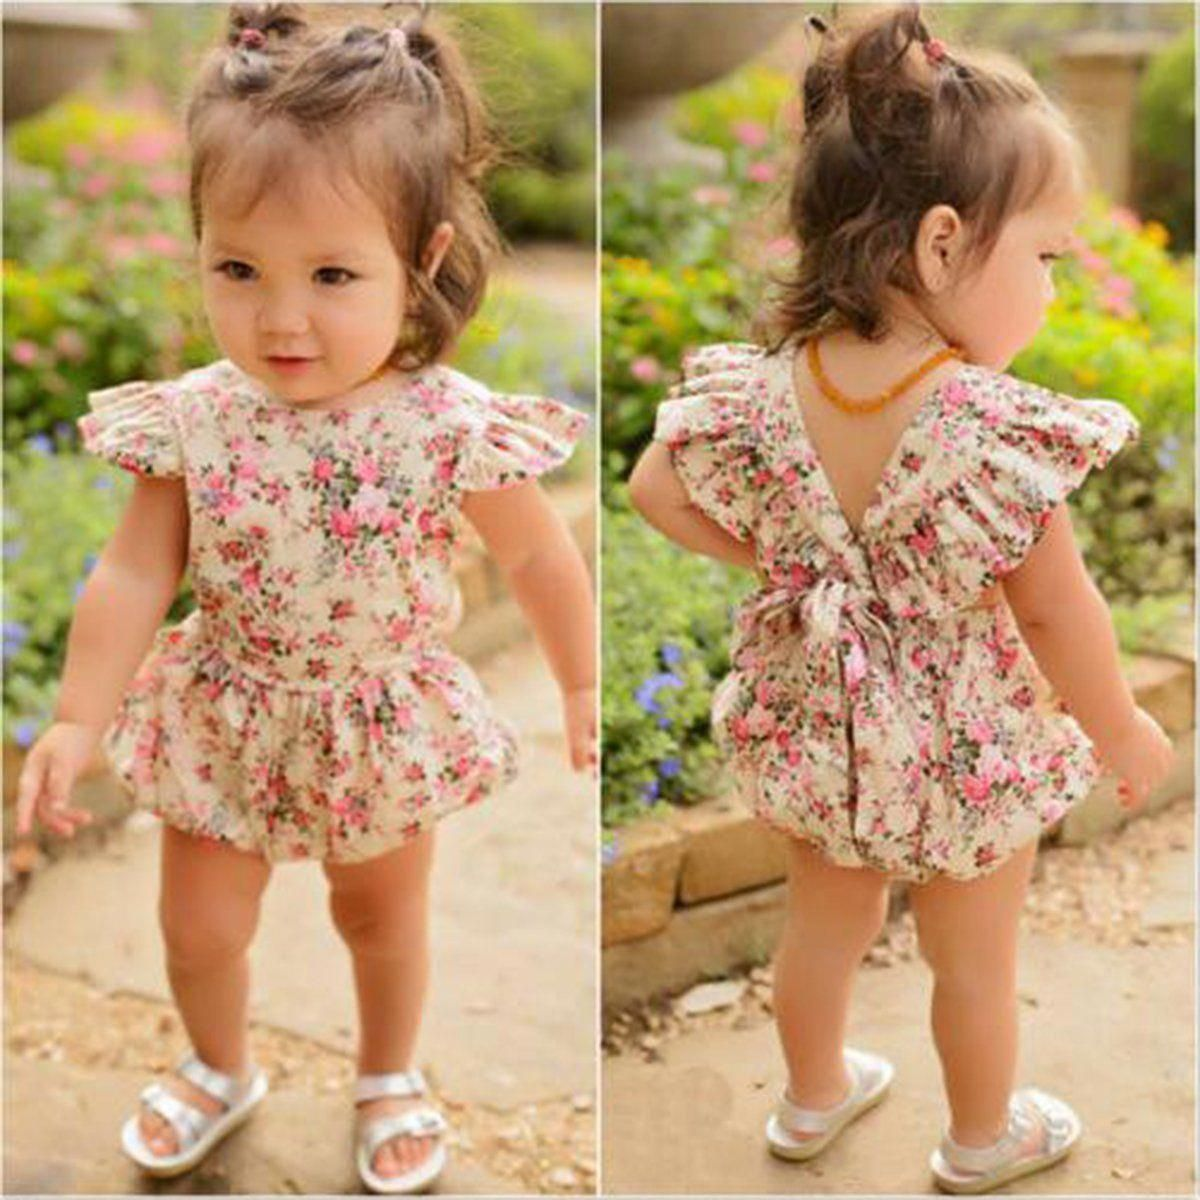 12 Month Baby Girl Clothes Buy Baby Dresses Online Little Girl Baby Dresses 20190730 Baby Girl Floral Romper Kids Outfits Kids Outfits Girls